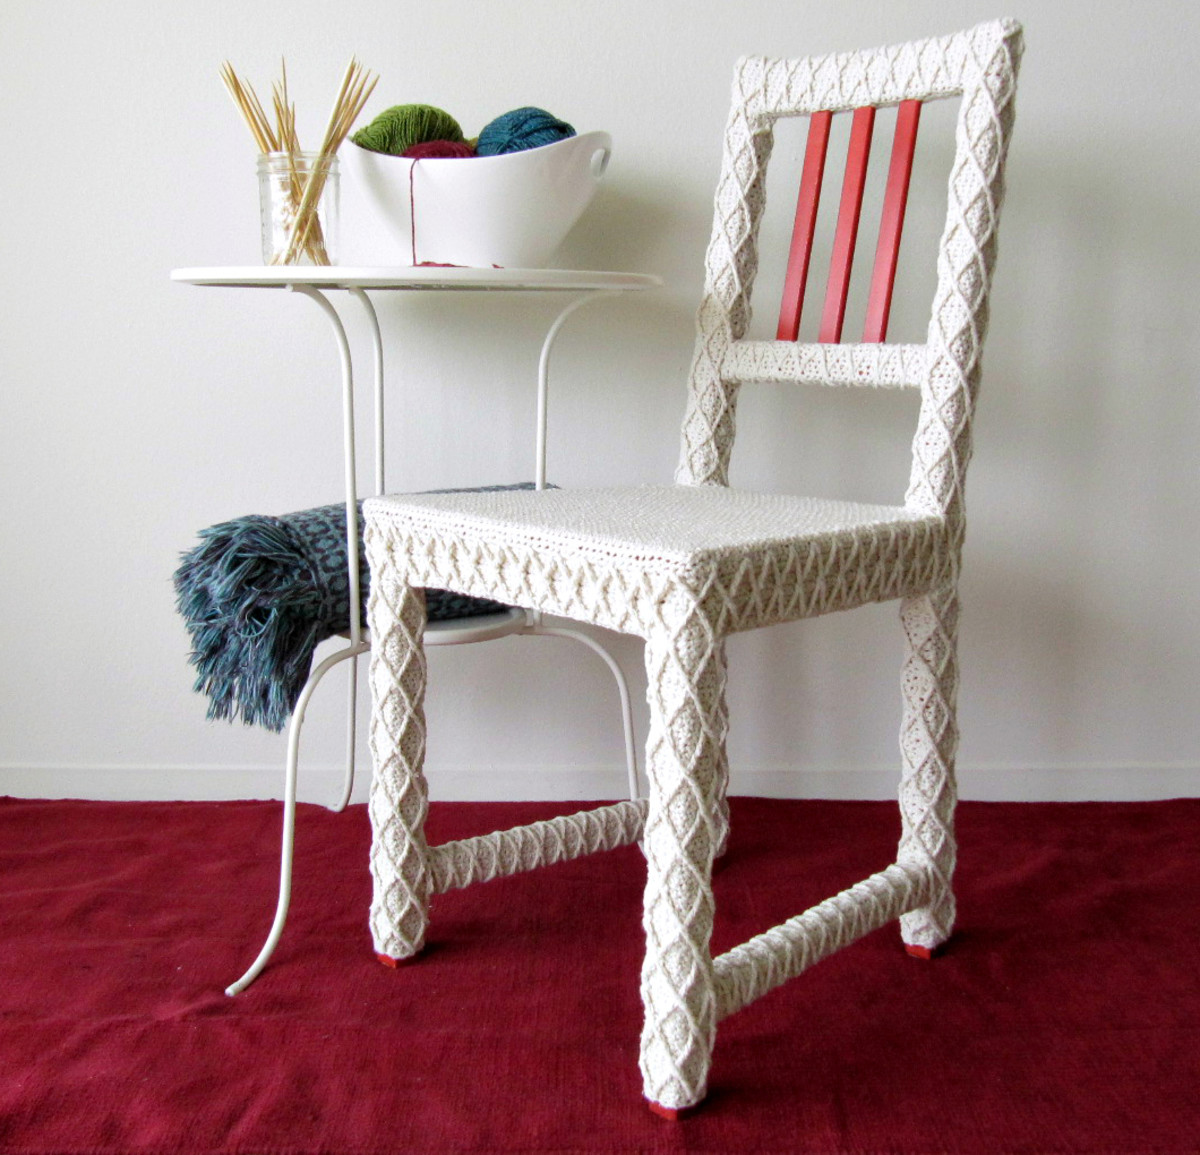 Reclaimed chair upholstered with 100% recycled yarn using yarn bombing technique.